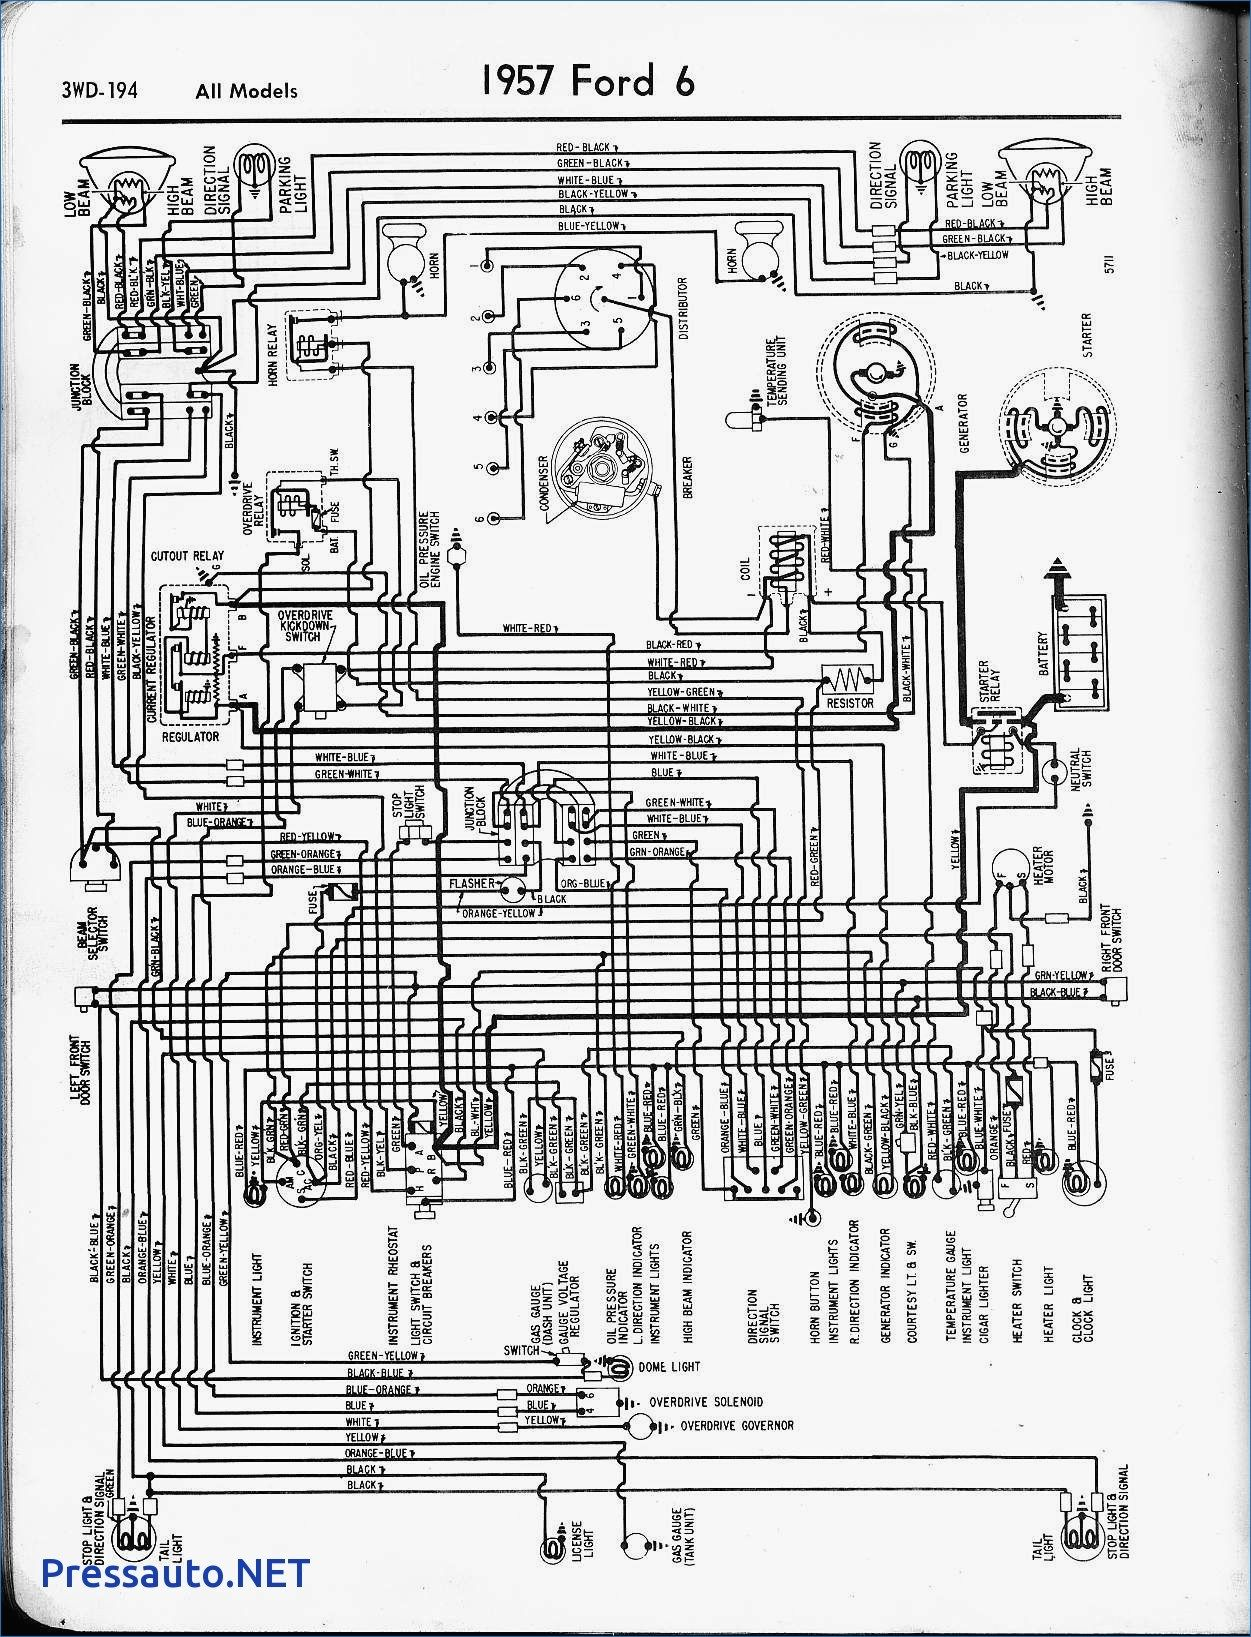 Wiring Diagram Peugeot 307 Cc Library 206 Power Steering Pressauto Net In On